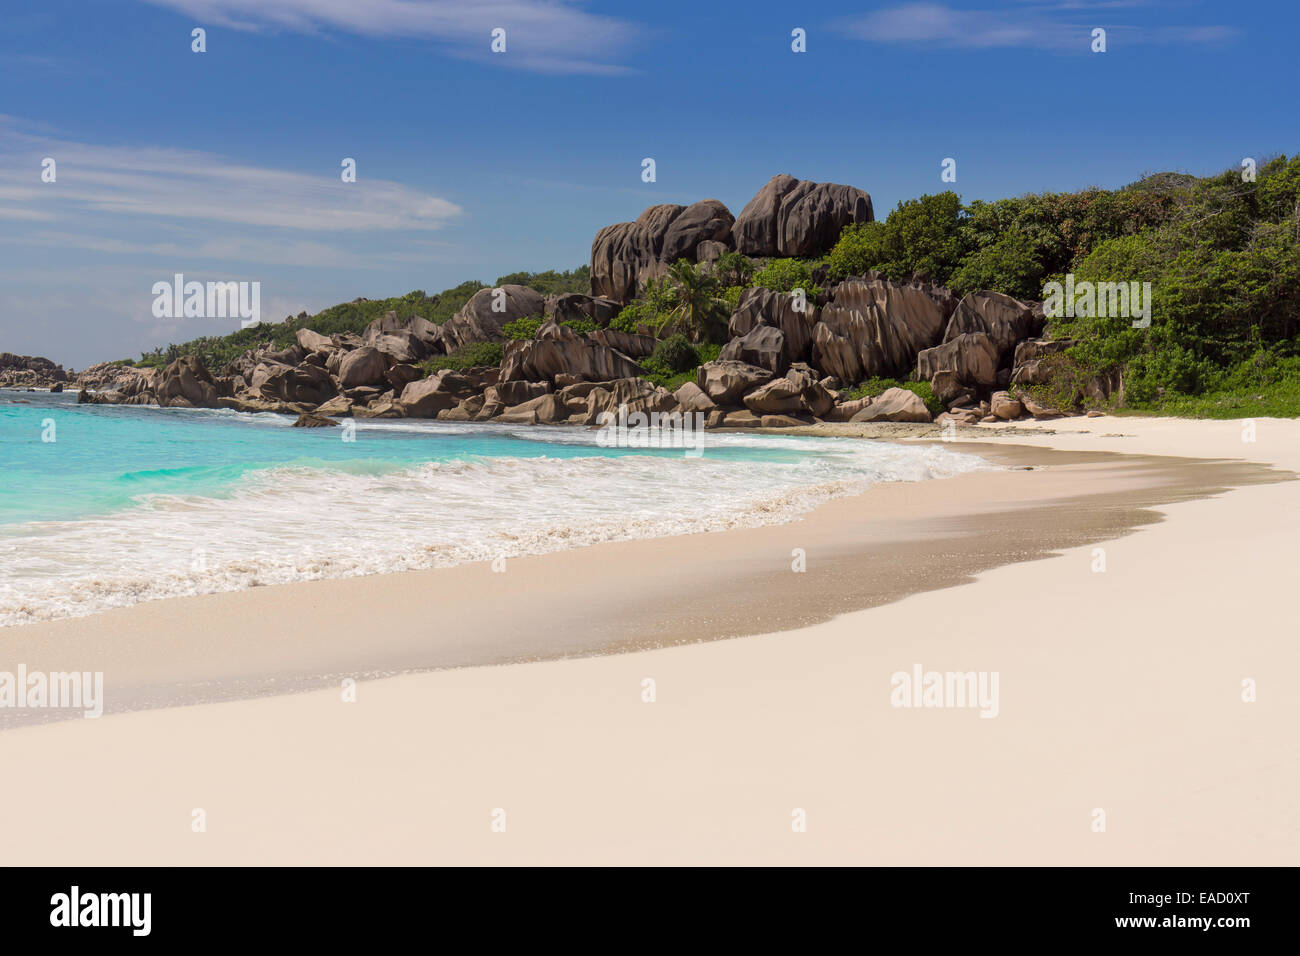 Sandy beach with the rock formations typical for the Seychelles, Grand Anse, La Digue, Seychelles - Stock Image